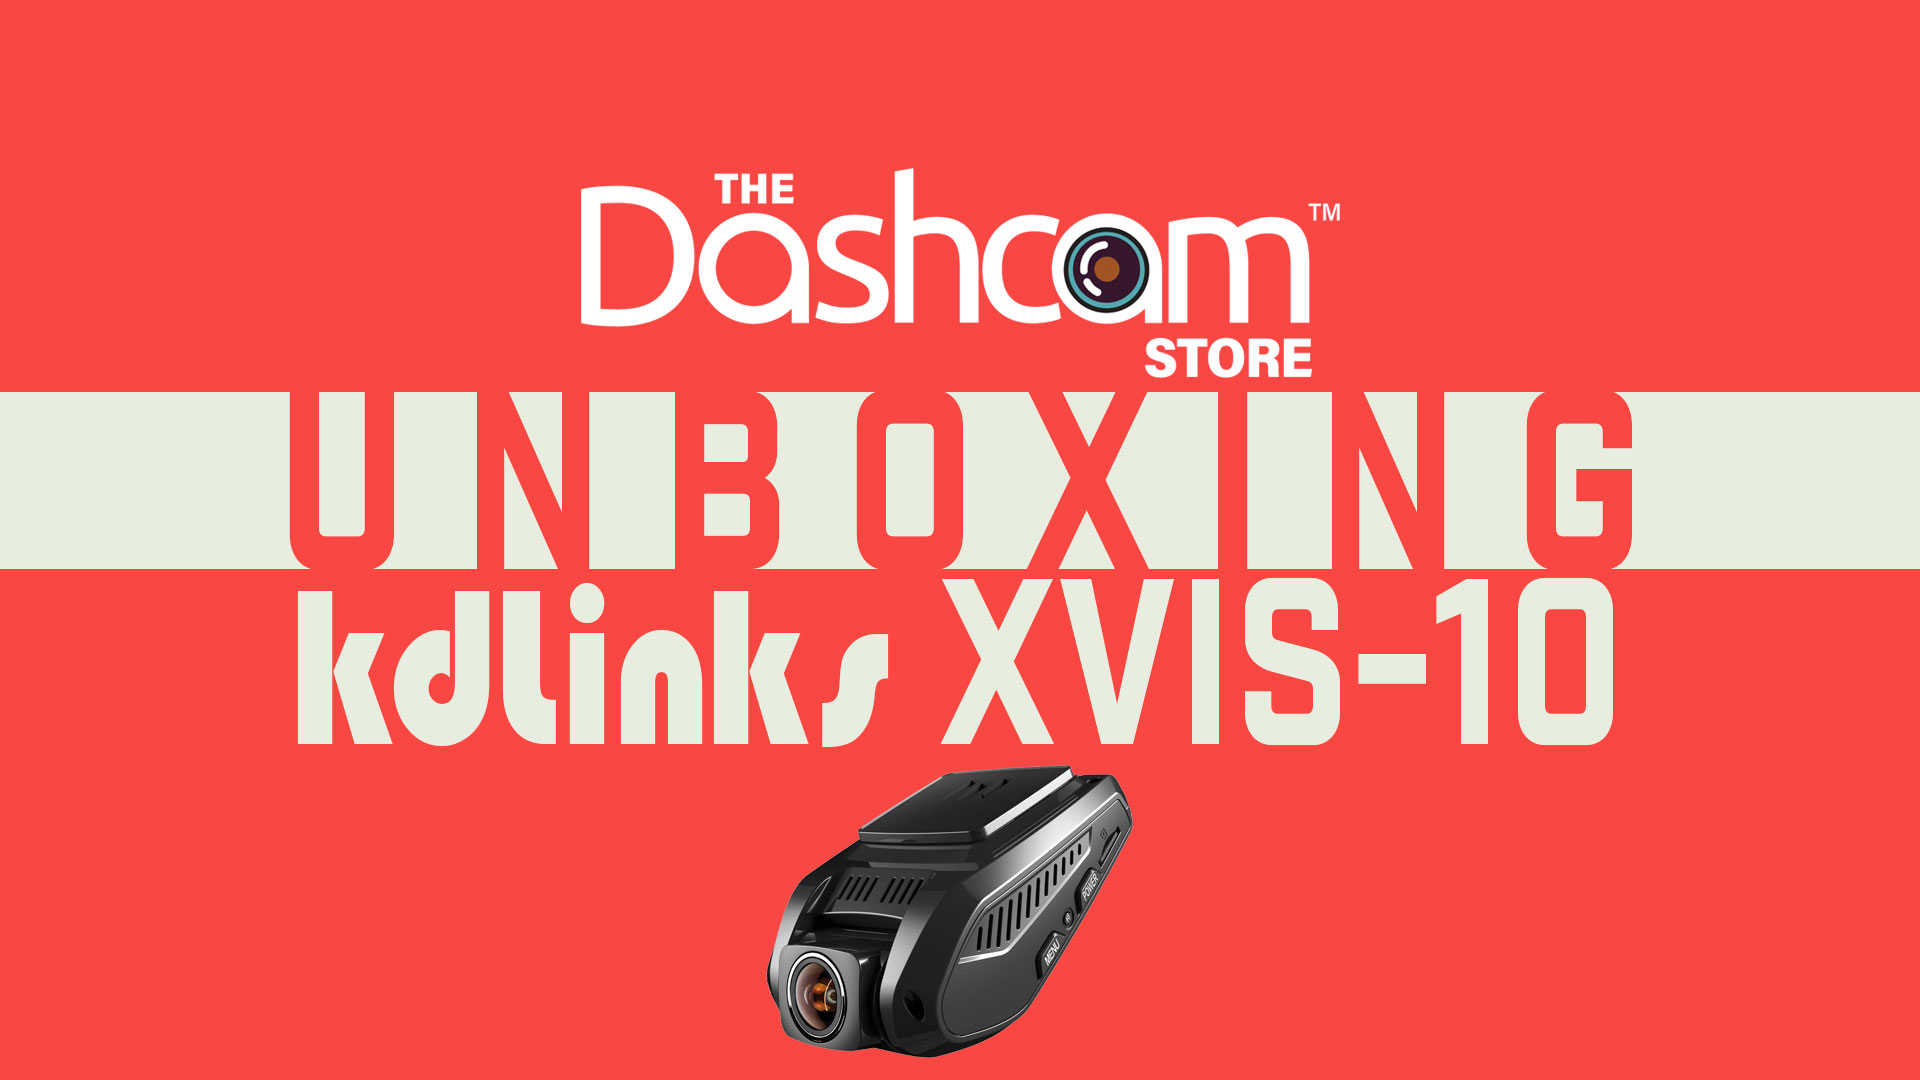 KDLinks XVIS-10 Dashcam Unboxing and Sample Footage